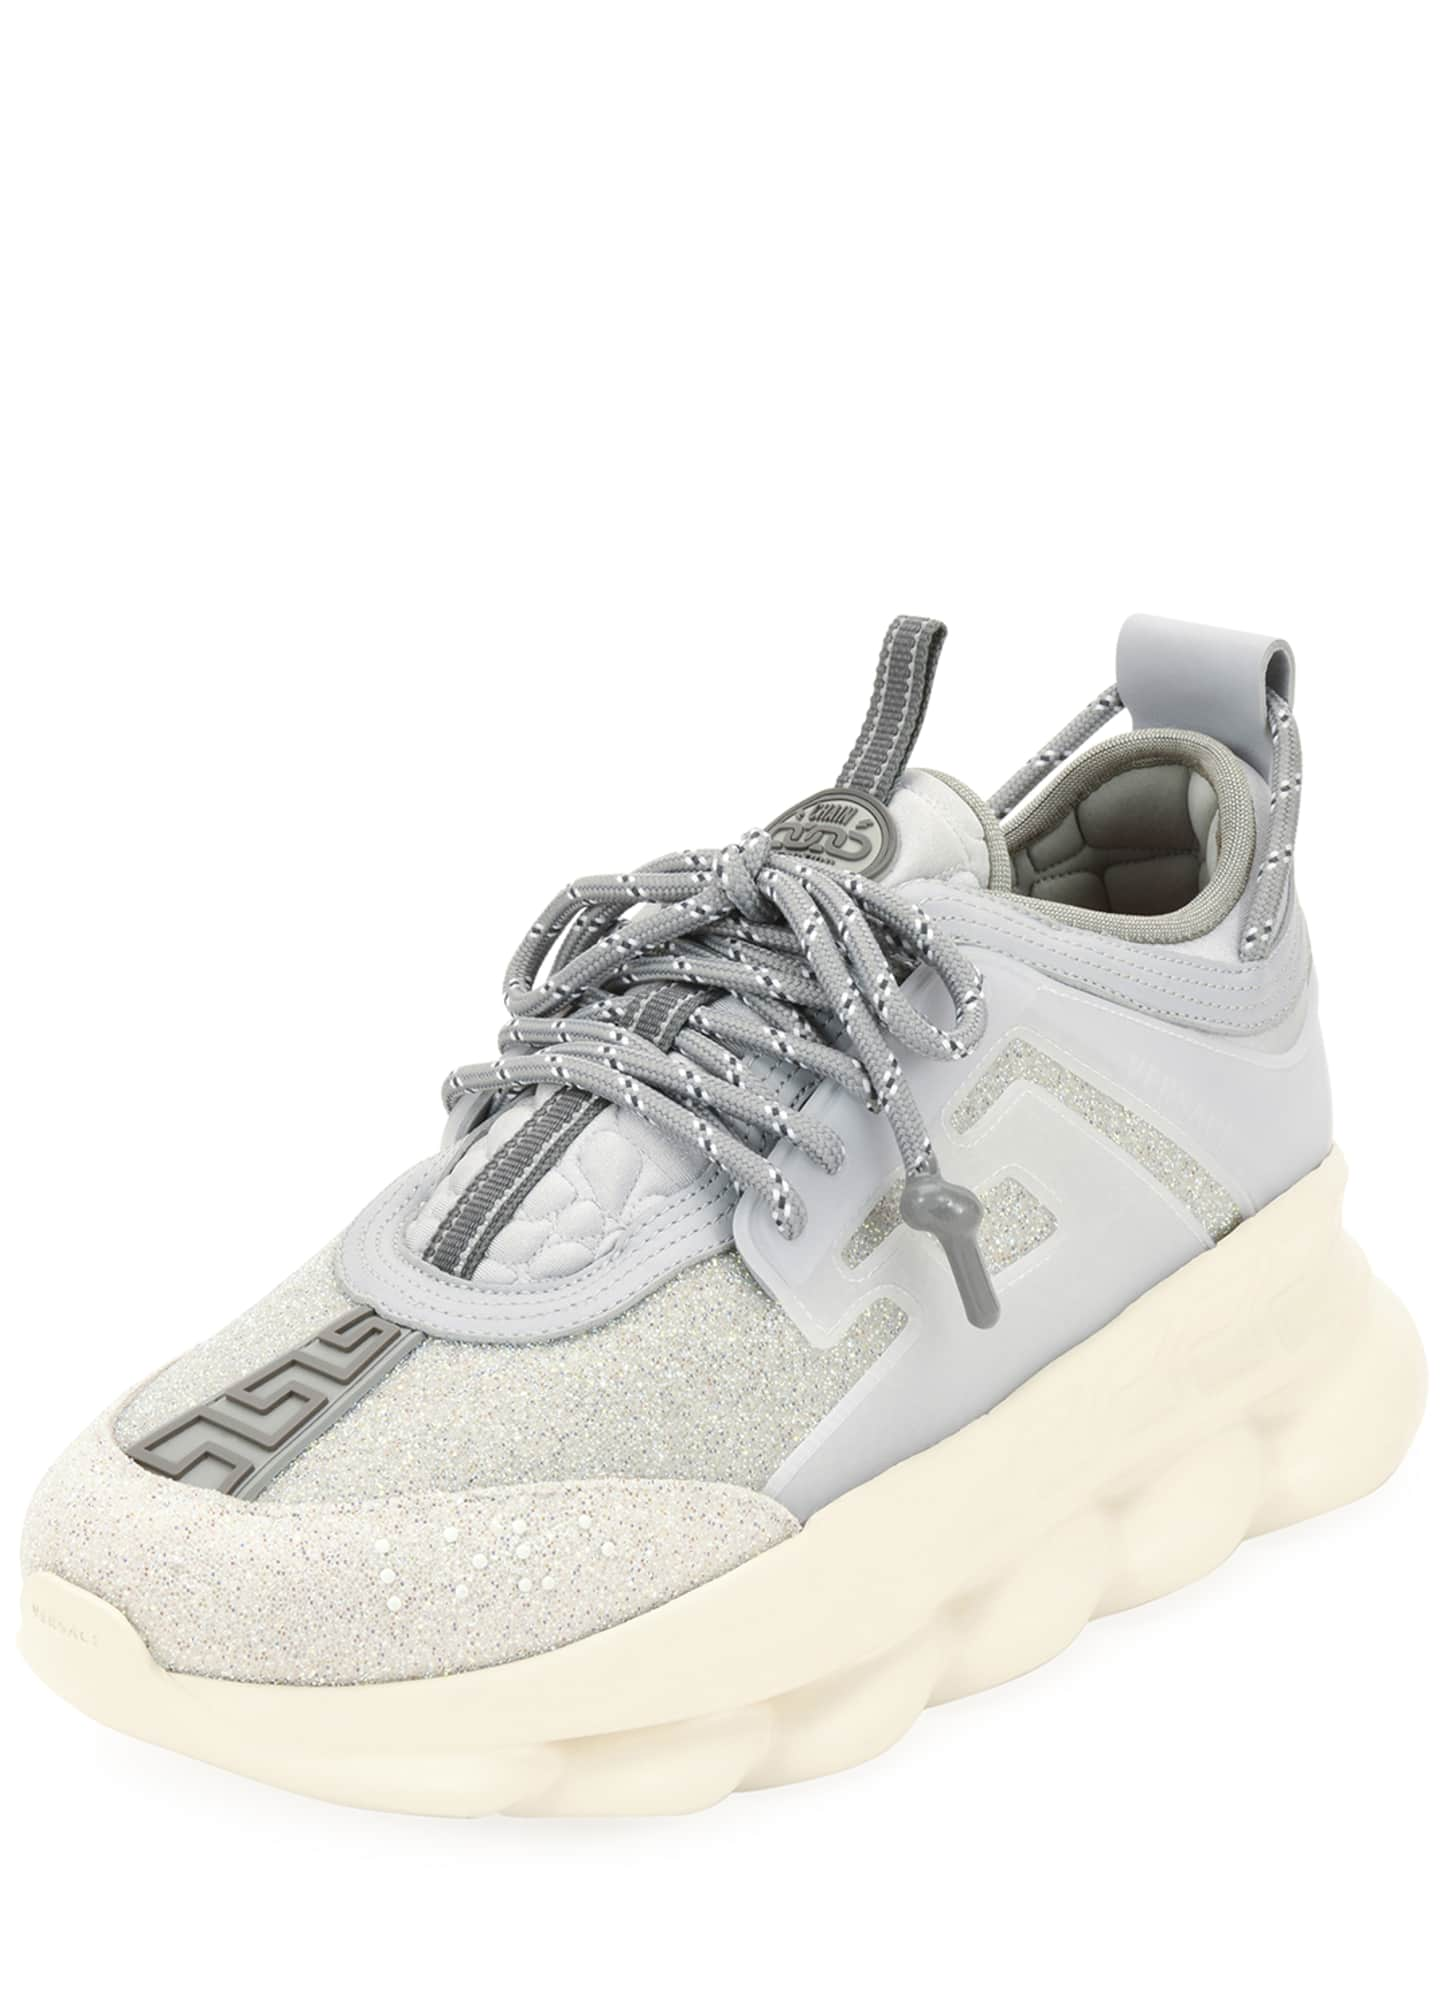 Versace Men's Crystal Chain Reaction Caged Sneakers